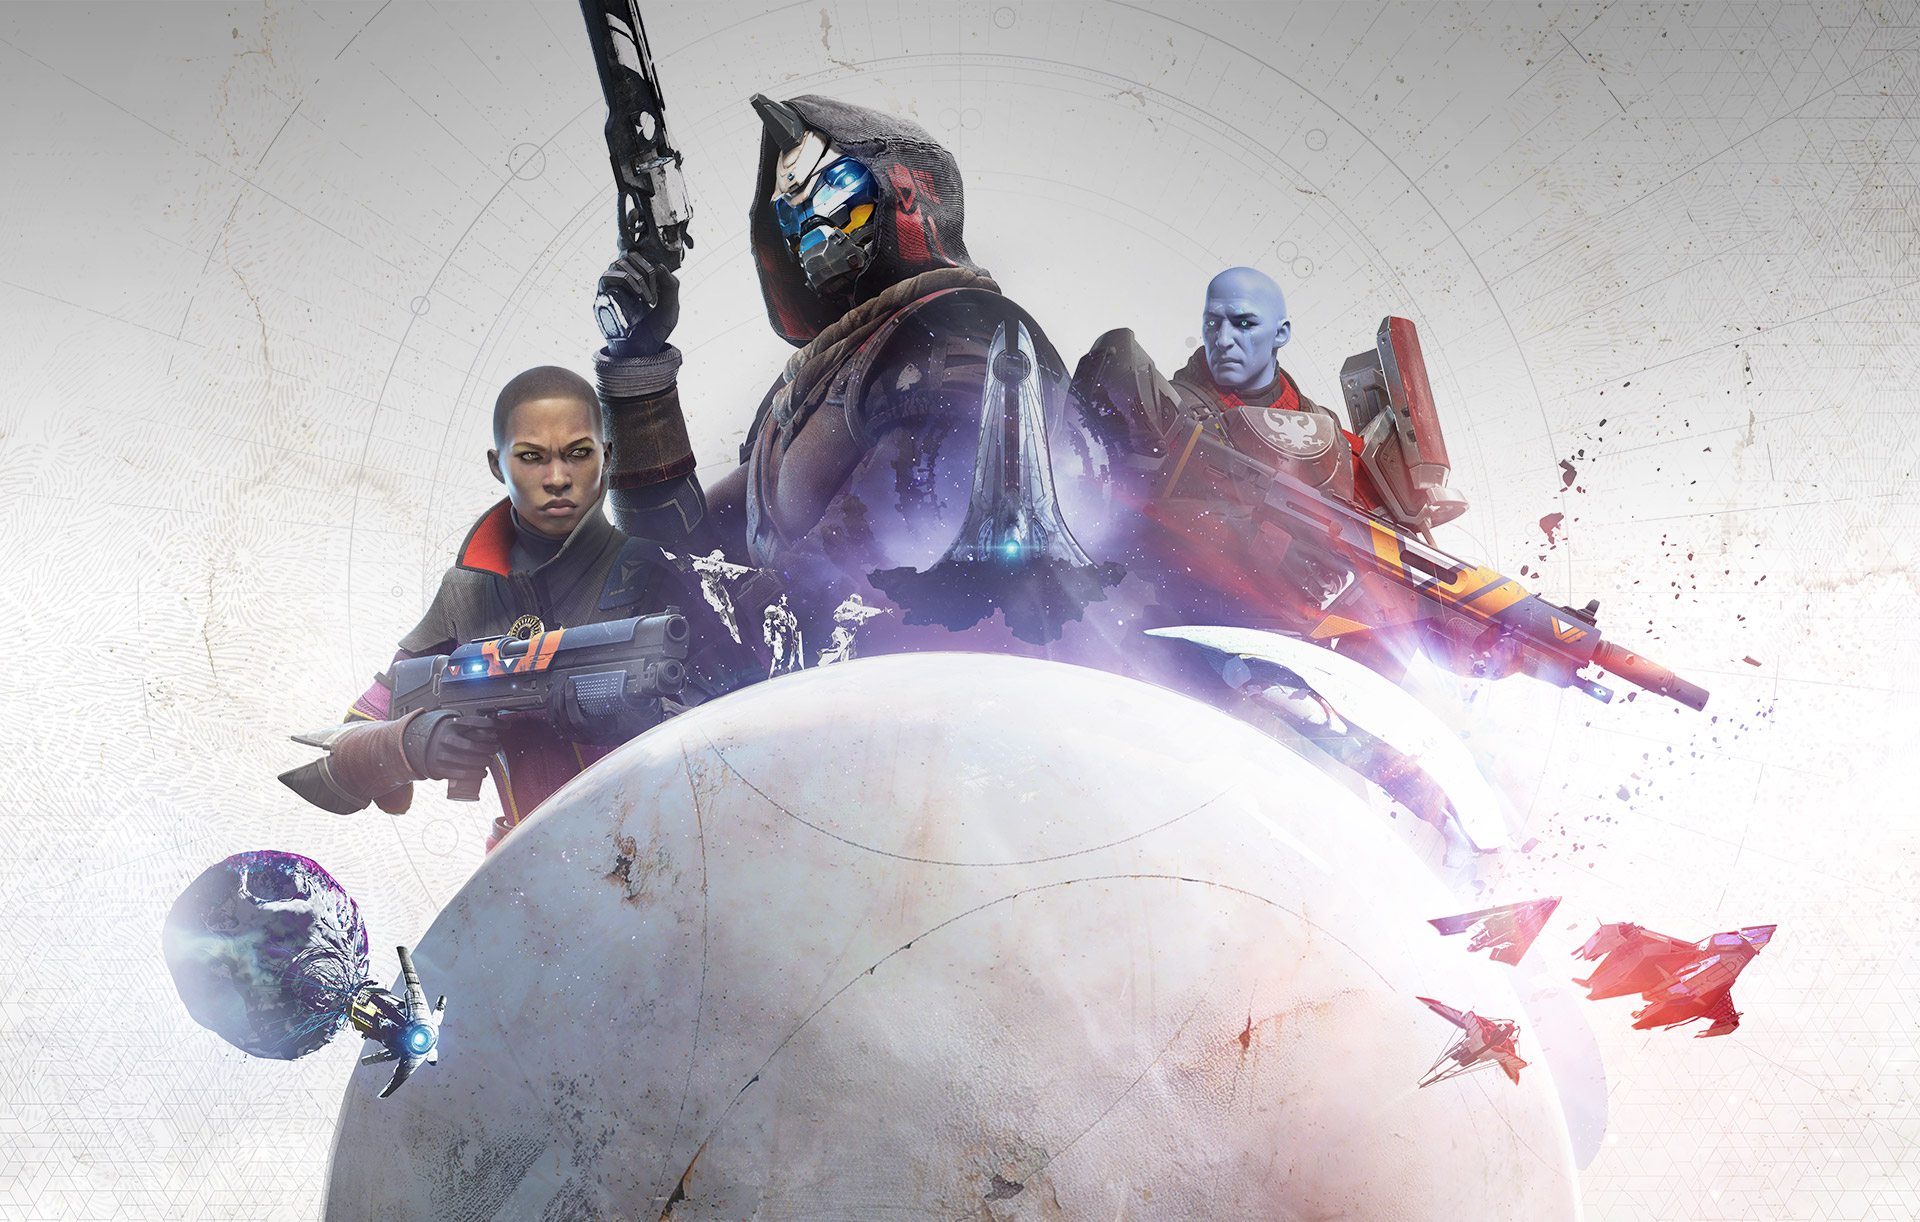 Destiny 2 on Google Stadia Will Not Have Crossplay